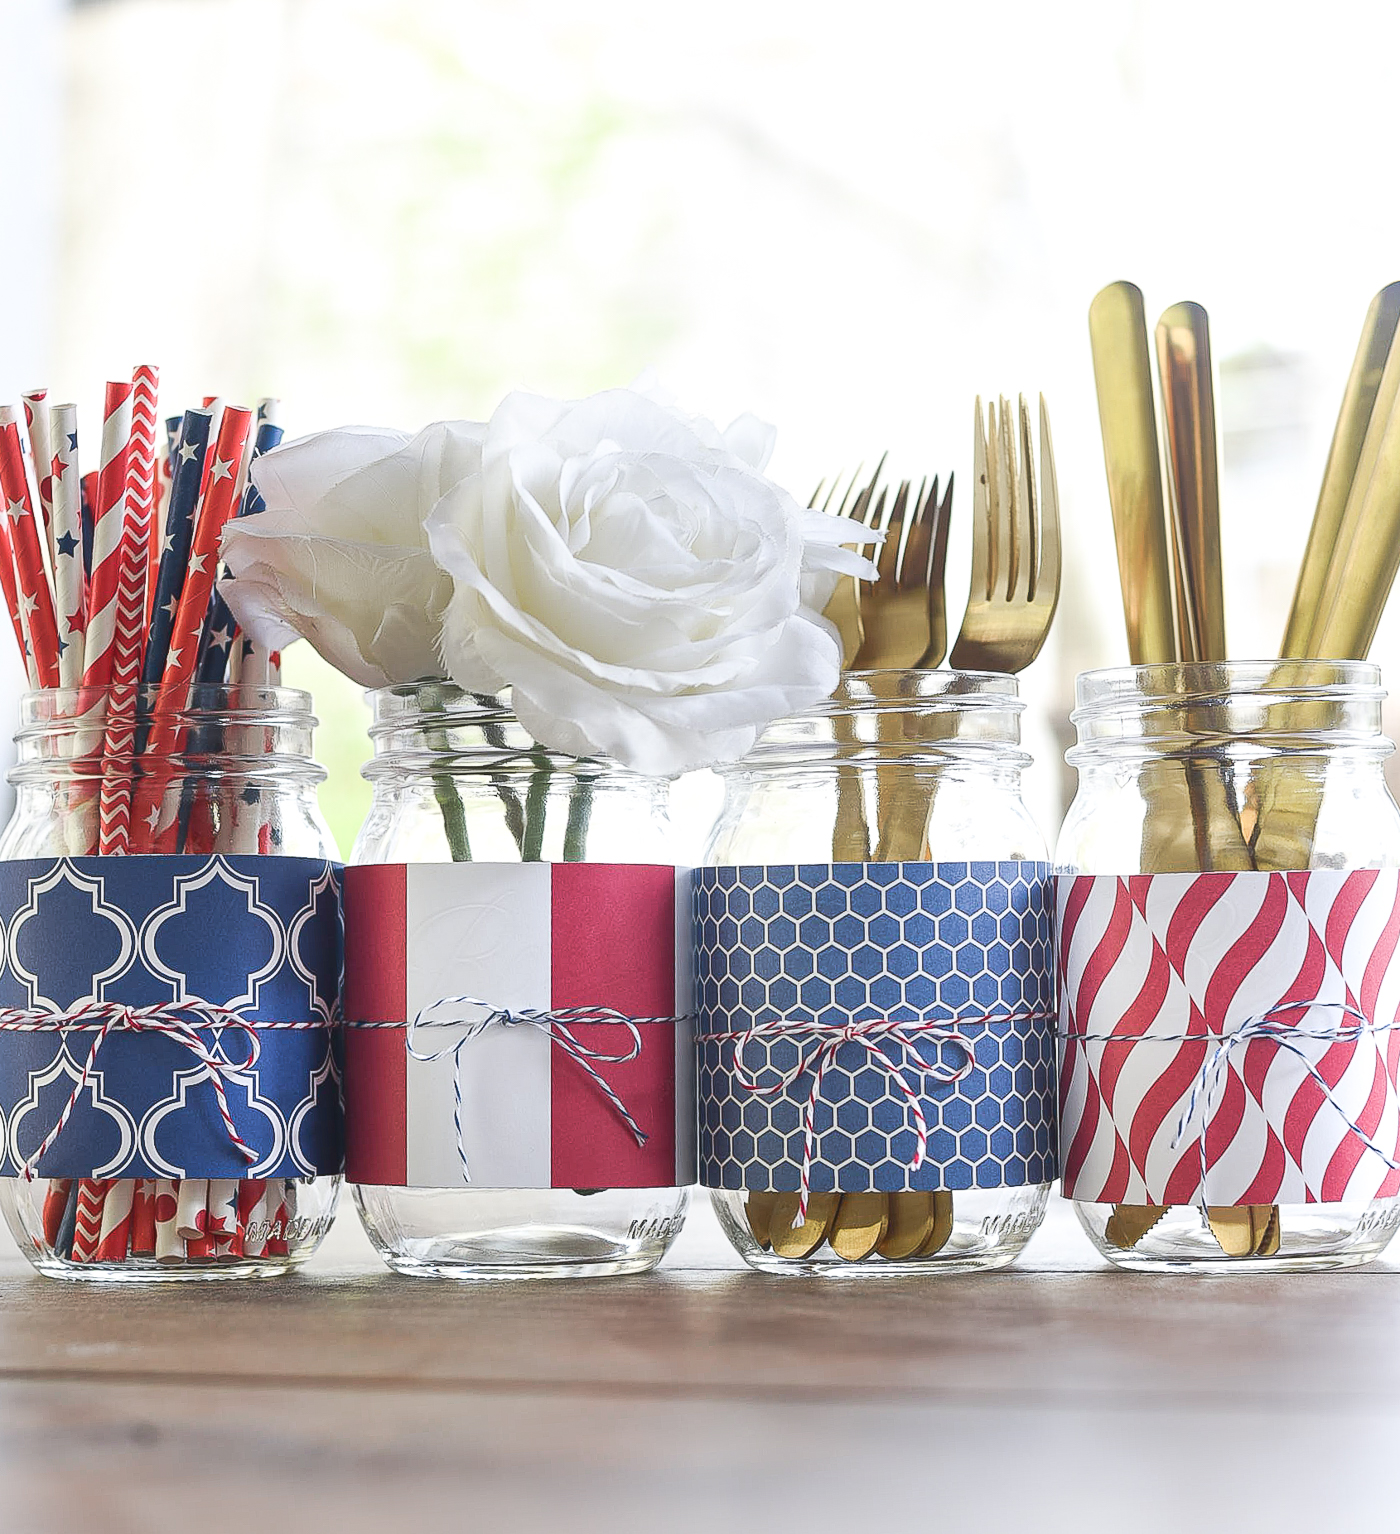 Red White Blue Mason Jar with Scrapbook Paper - Patriotic Mason Jars for Memorial Day, Fourth of July, Labor Day.